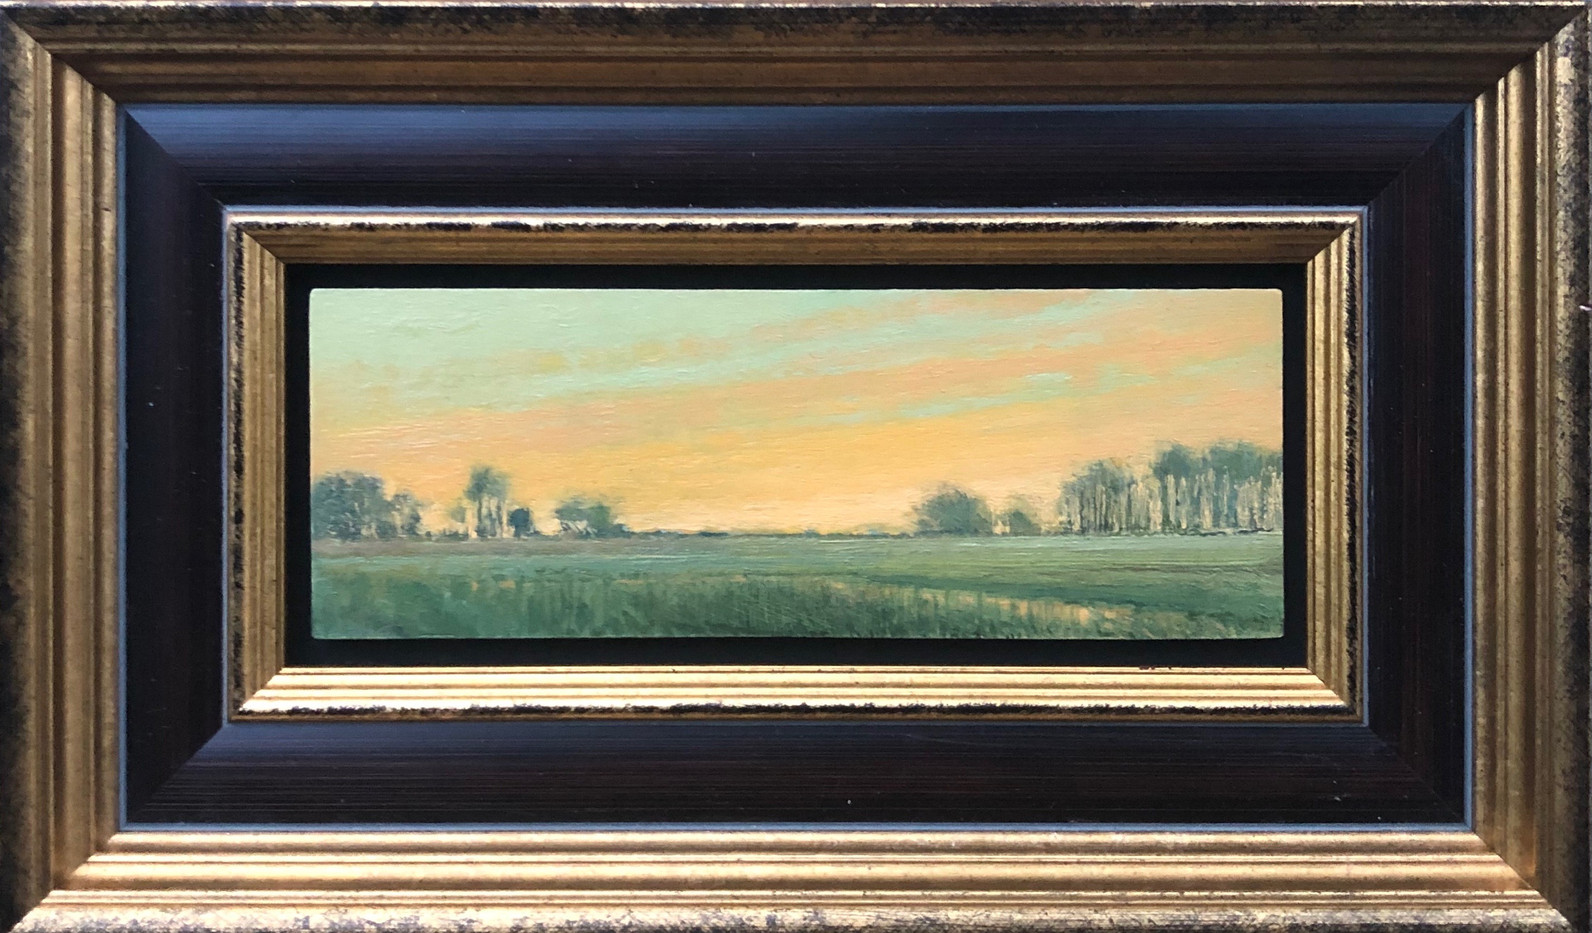 Summer Orange Sunset by Crista Pisano, oil 2x5.75 $700